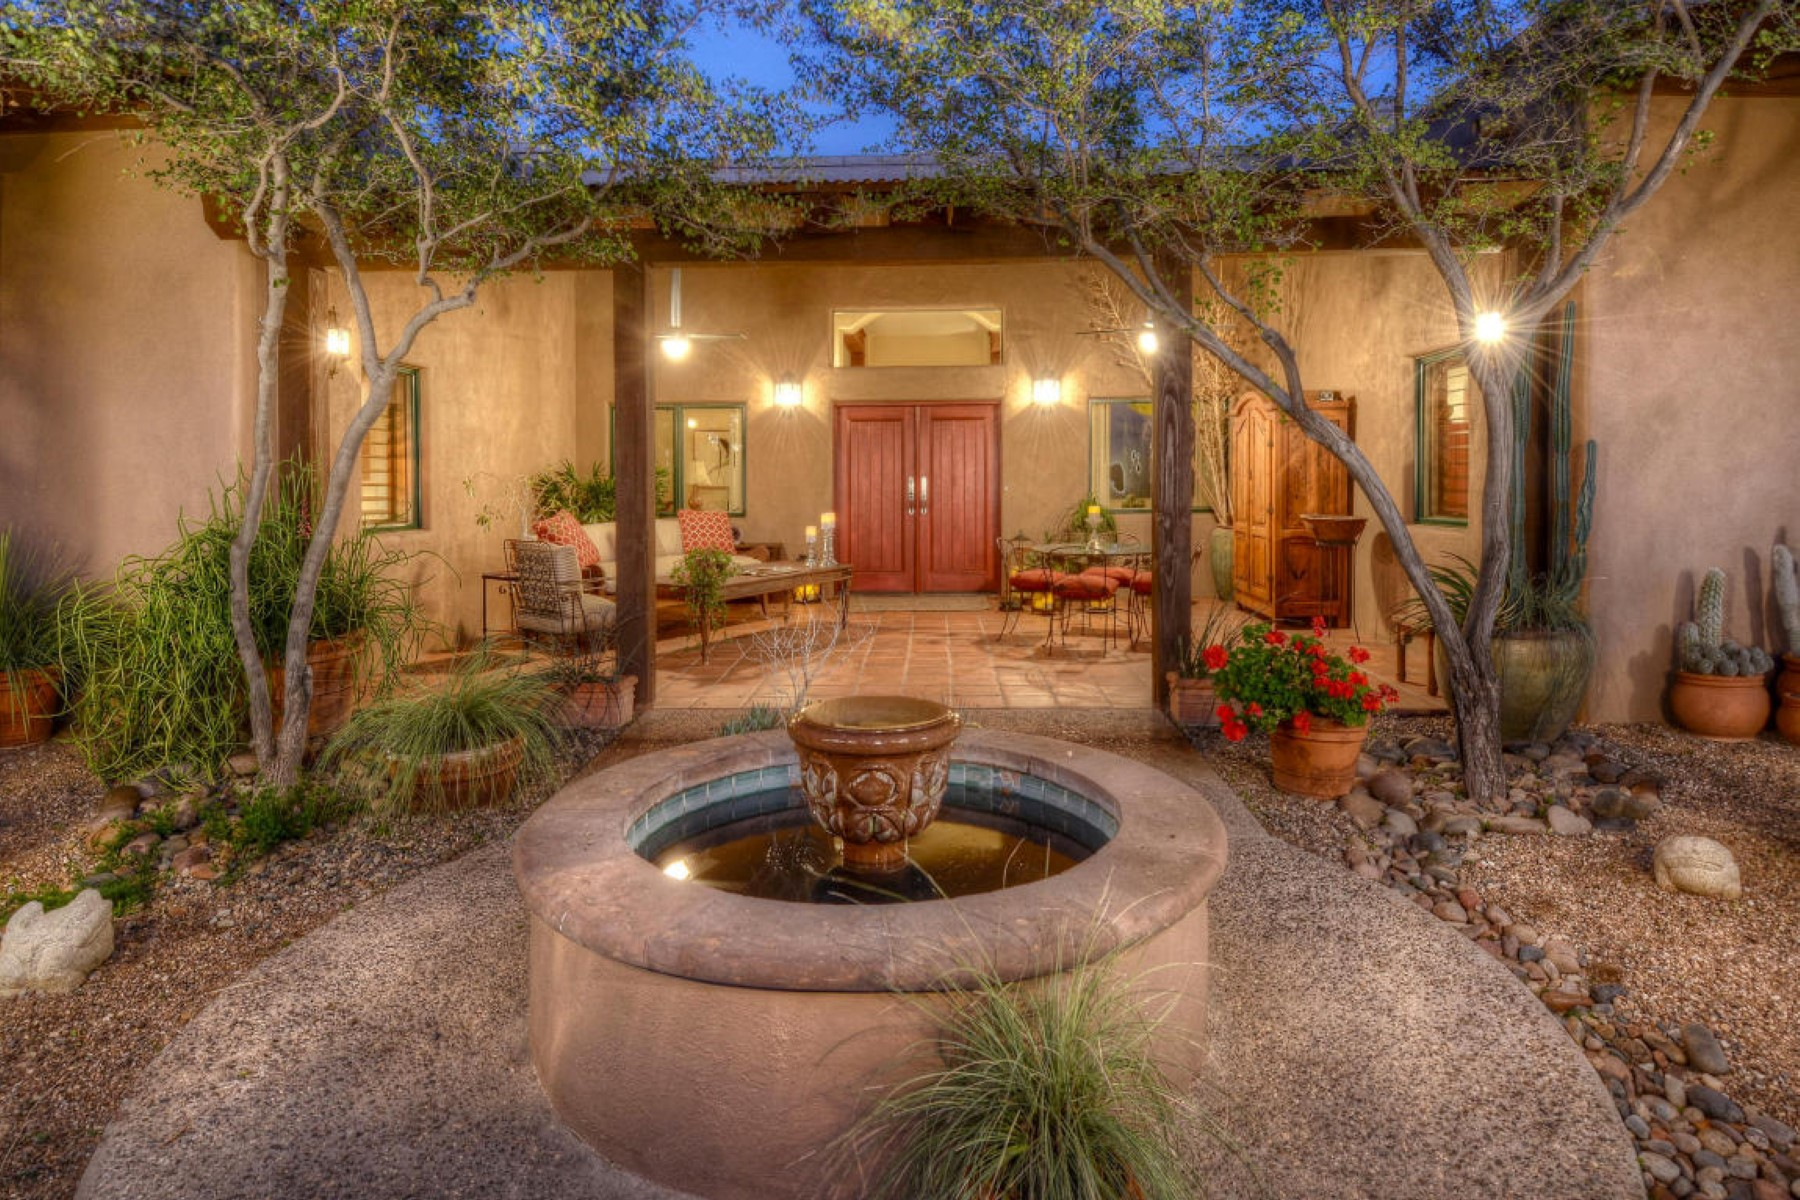 Maison unifamiliale pour l Vente à Exquisite Hacienda Ranch secluded 10 acre retreat 13450 N Teal Blue Trail Tucson, Arizona, 85742 États-Unis